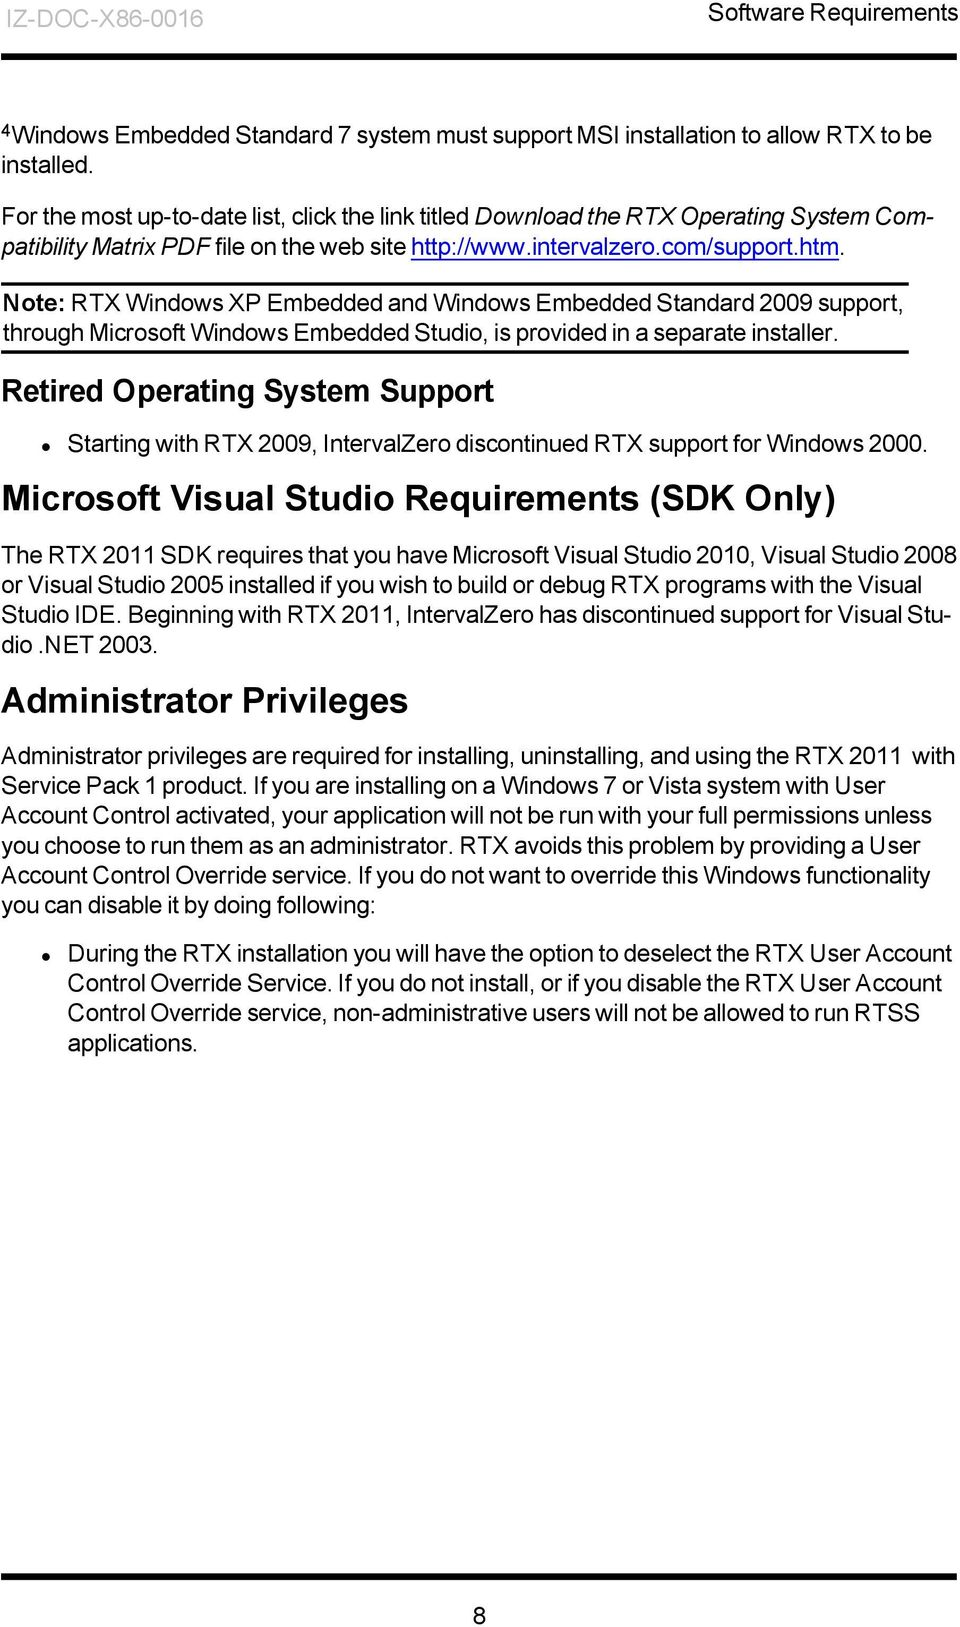 Note: RTX Windows XP Embedded and Windows Embedded Standard 2009 support, through Microsoft Windows Embedded Studio, is provided in a separate installer.